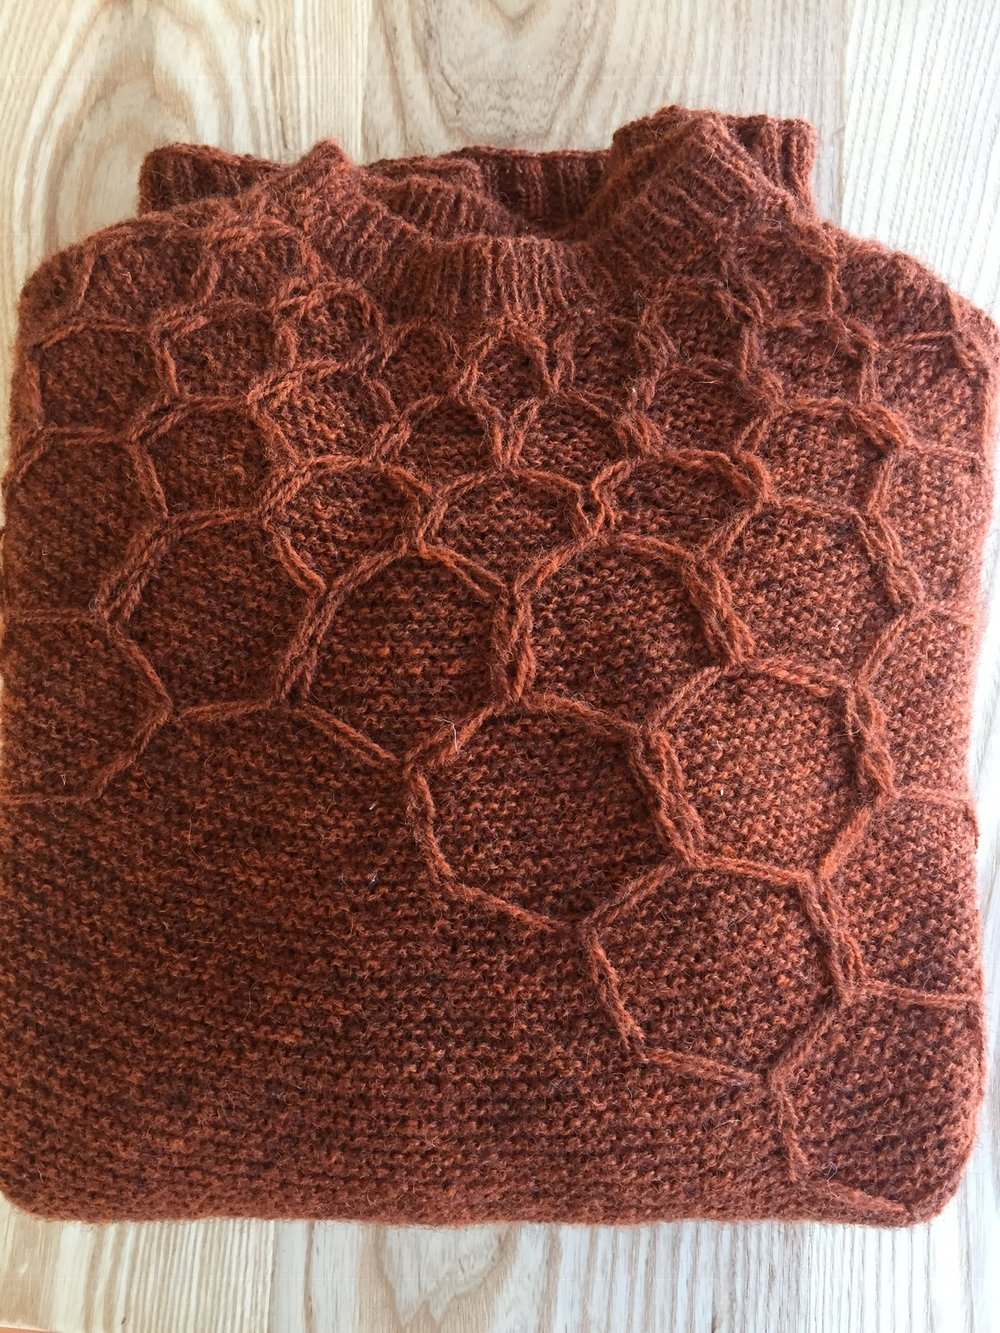 Helga's Wool and Honey: a stunner